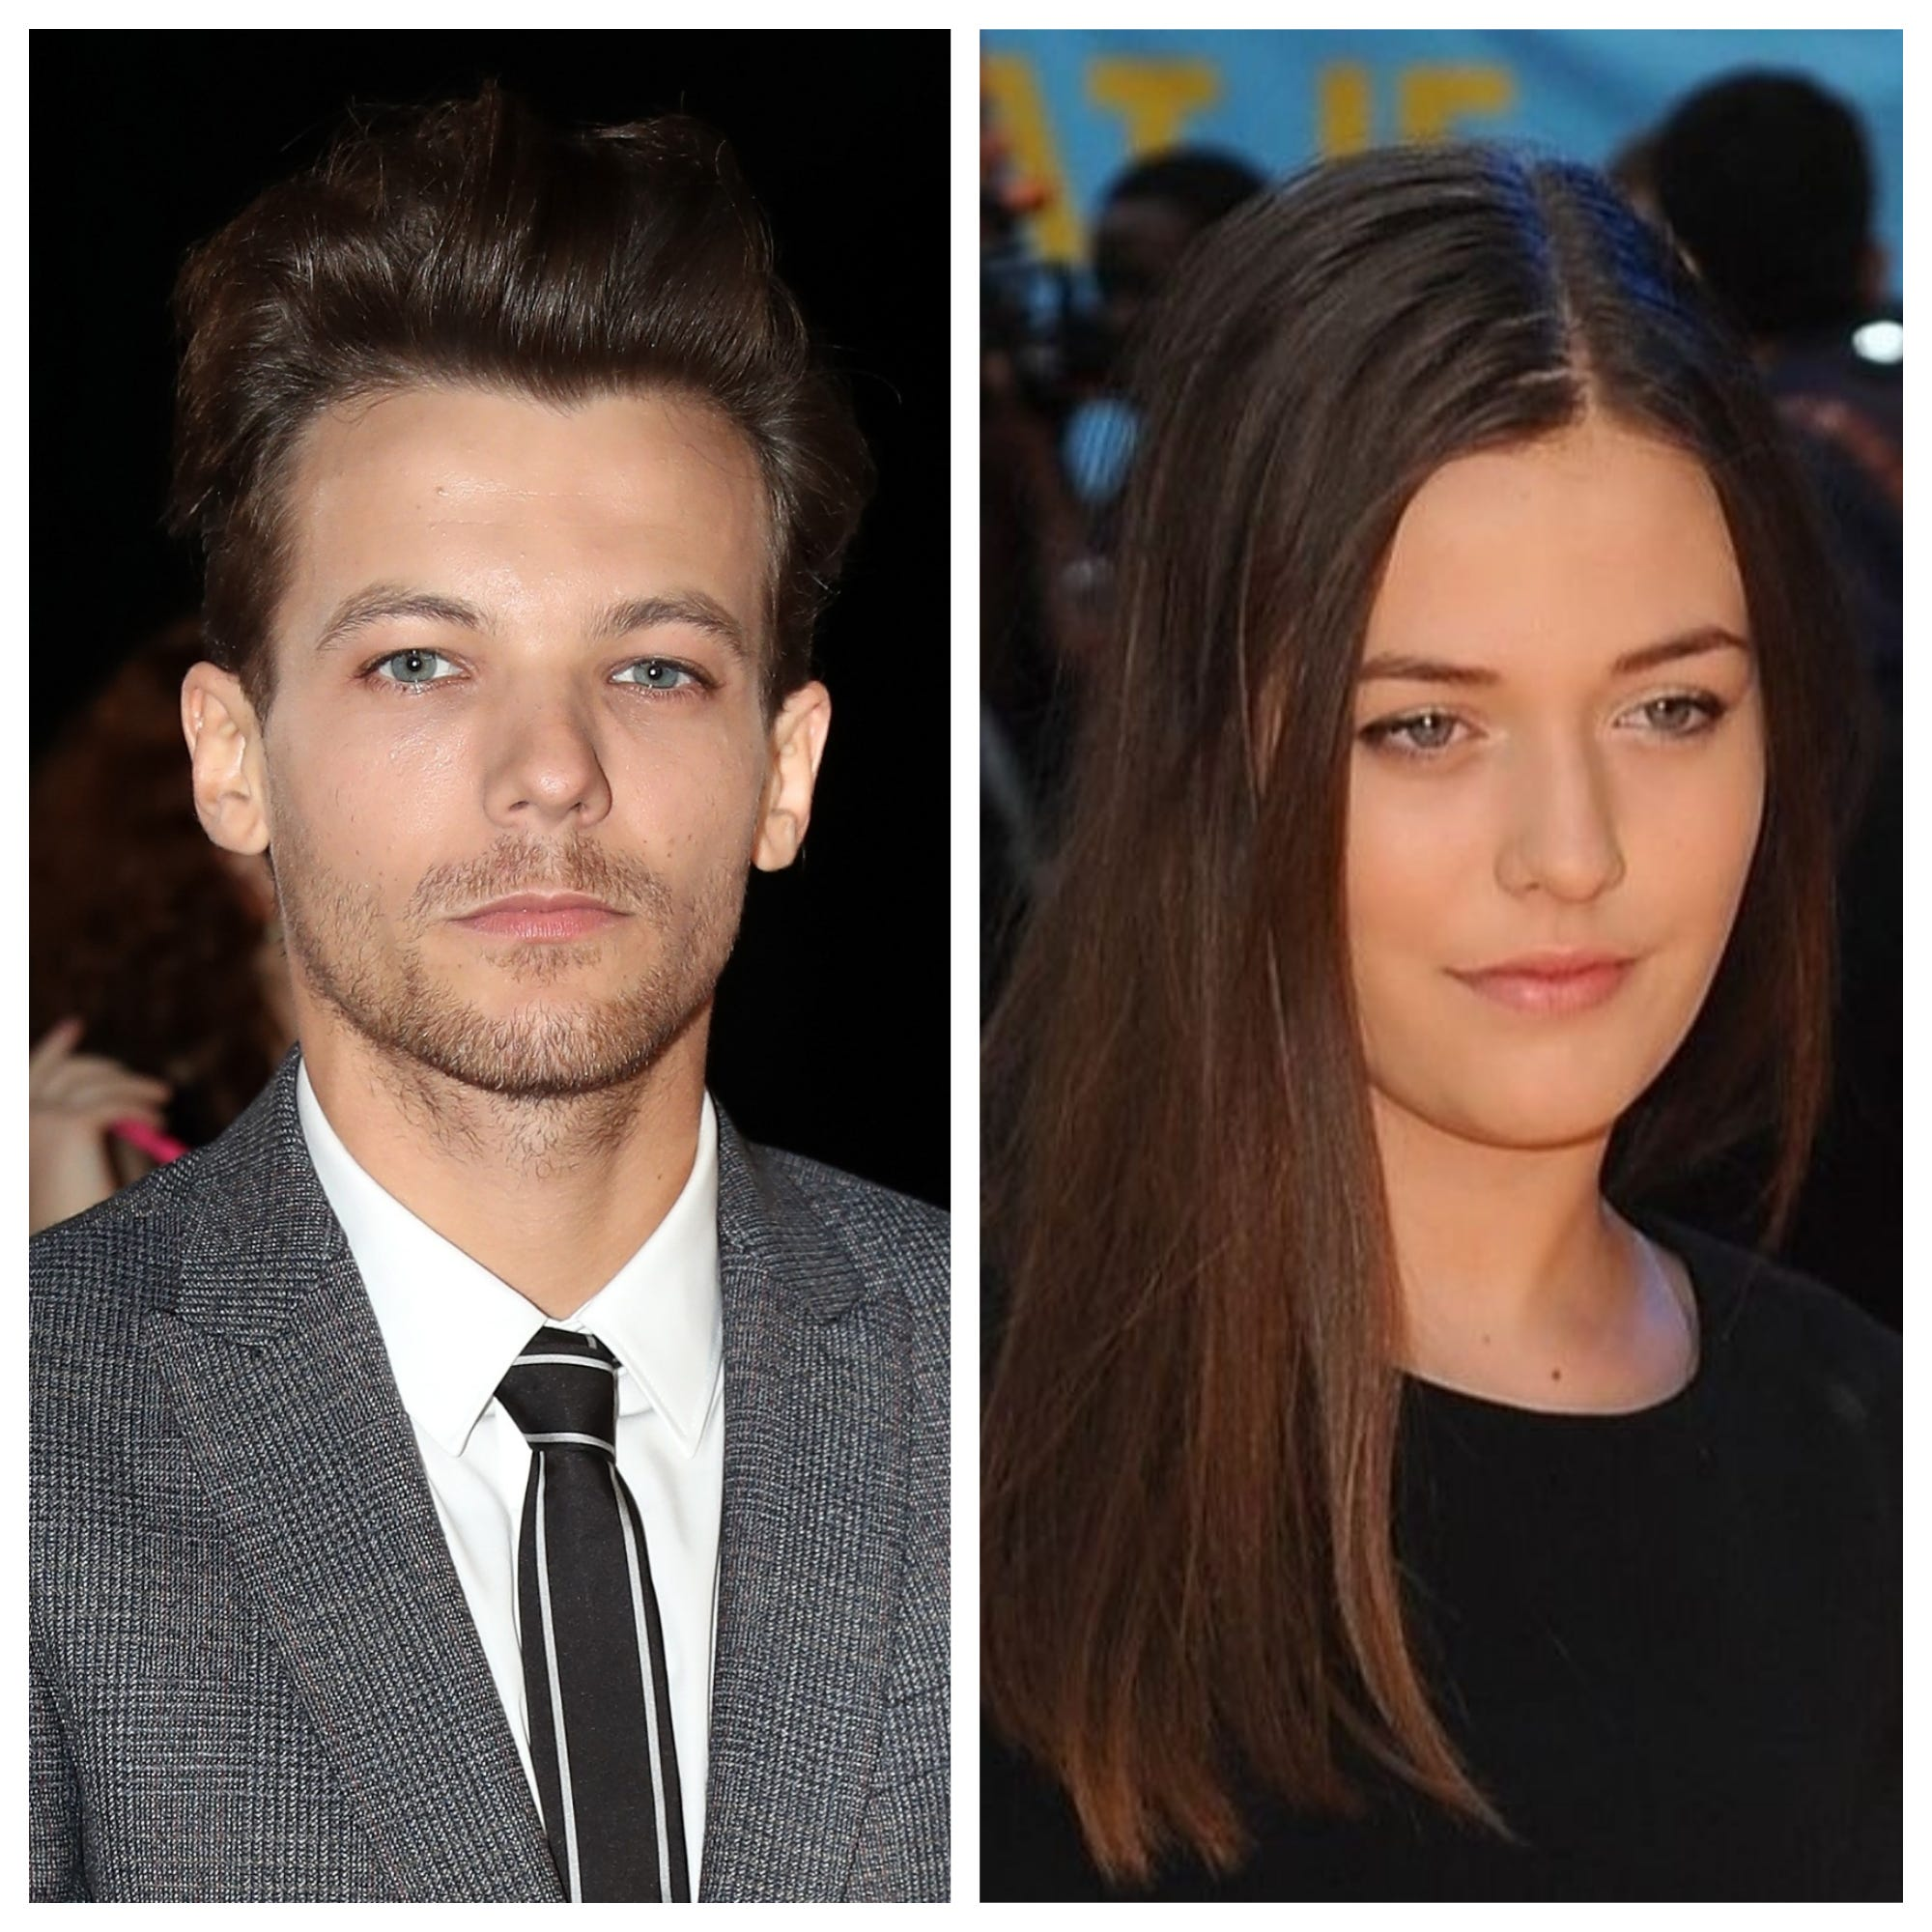 One Direction pop star Louis Tomlinson's sister Félicité dies tragically at 18